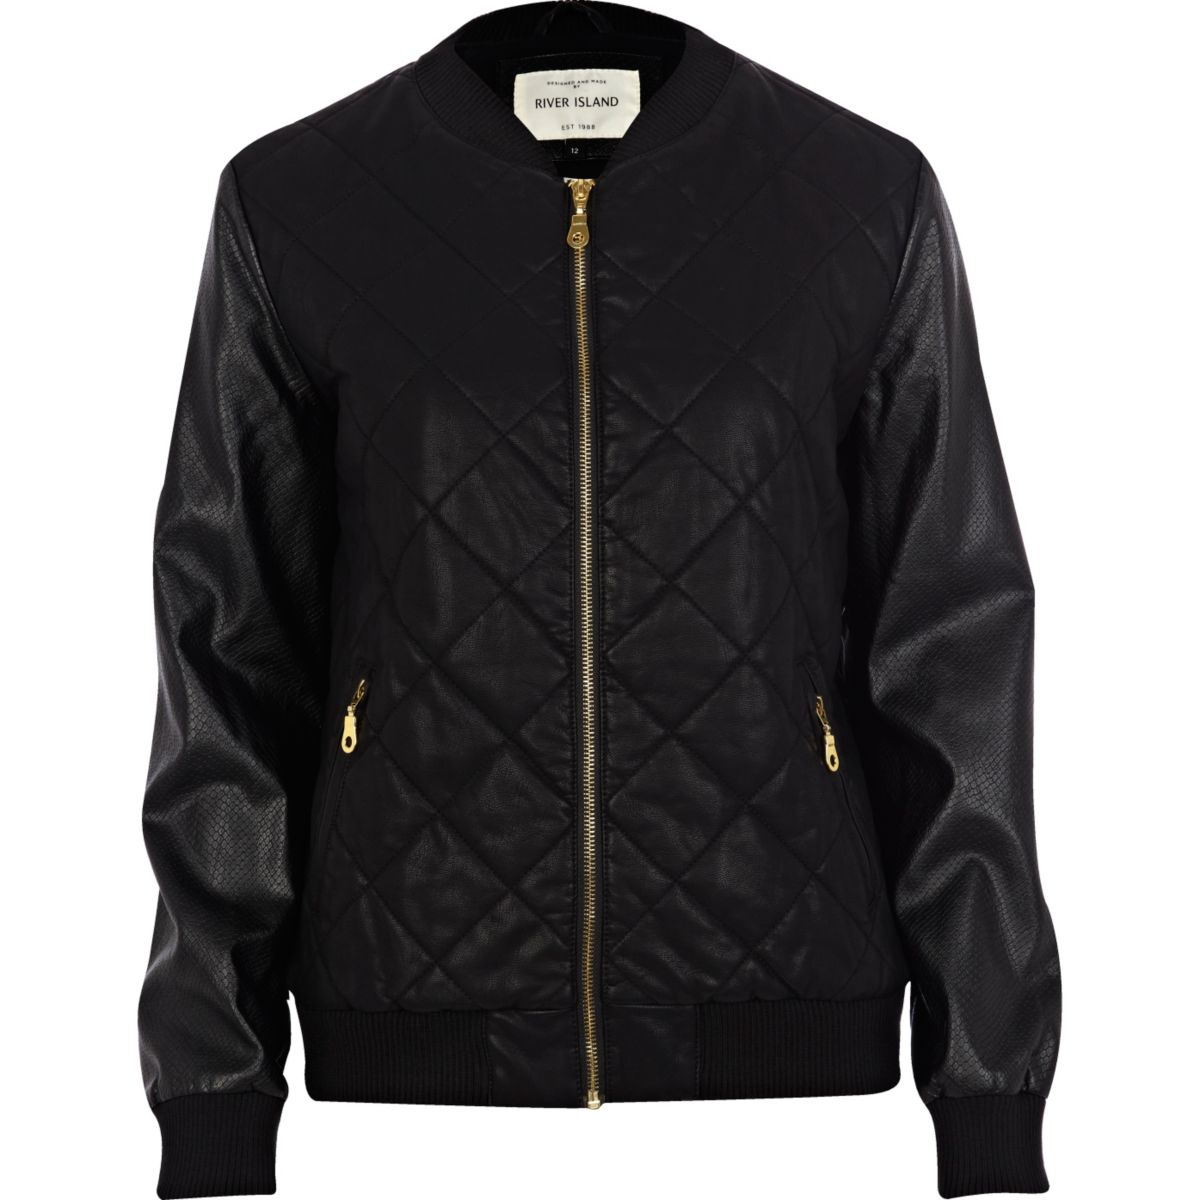 Shop mens leather and faux leather jackets on jomp16.tk Free shipping and free returns on eligible items.